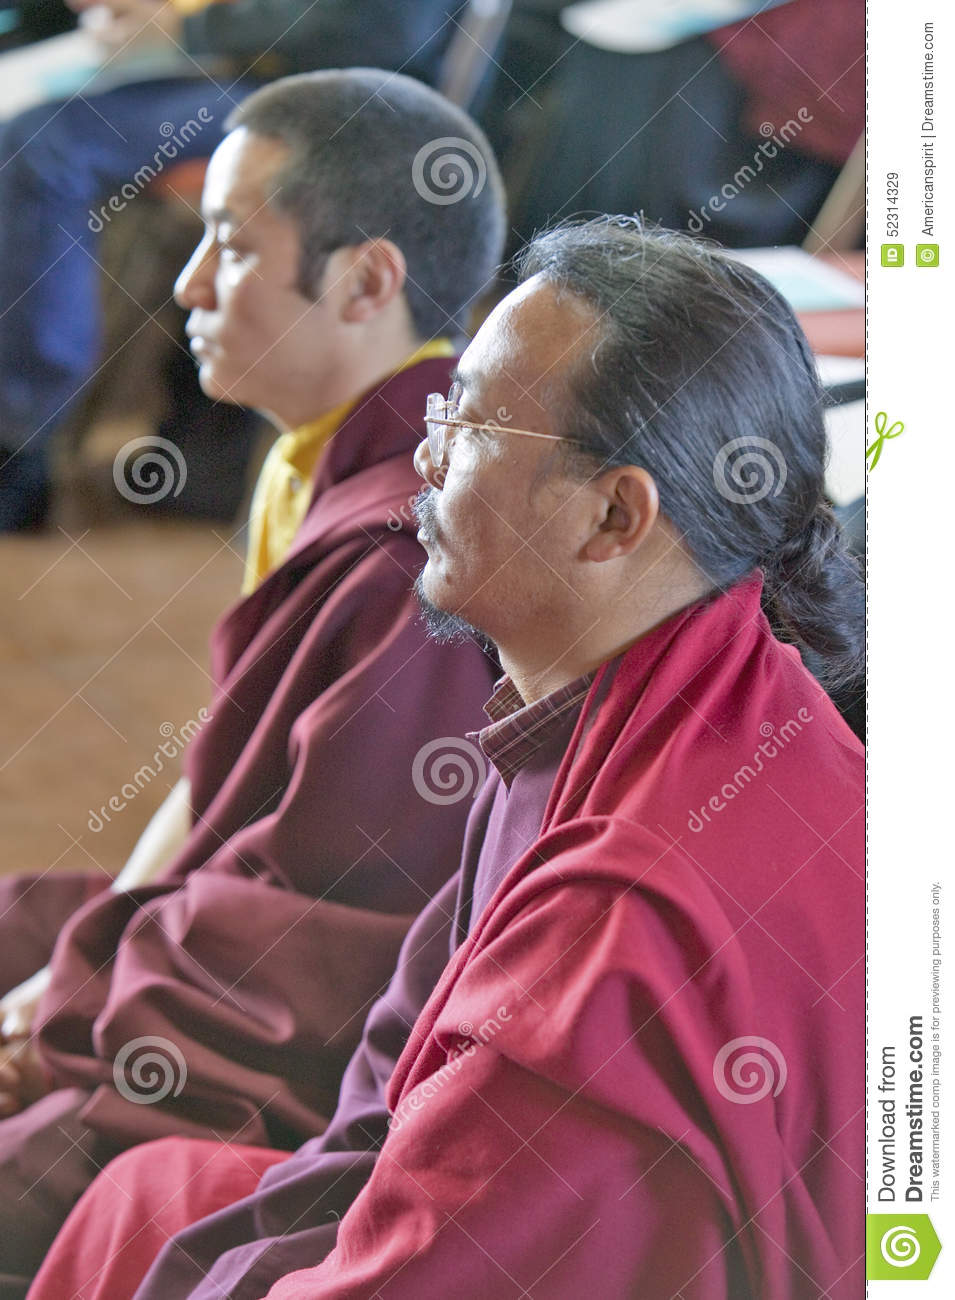 mount blanchard buddhist single men Wharton oh demographics data the city with the highest percent of people who are in a family in the area is mount blanchard figure 33 shows the single men.